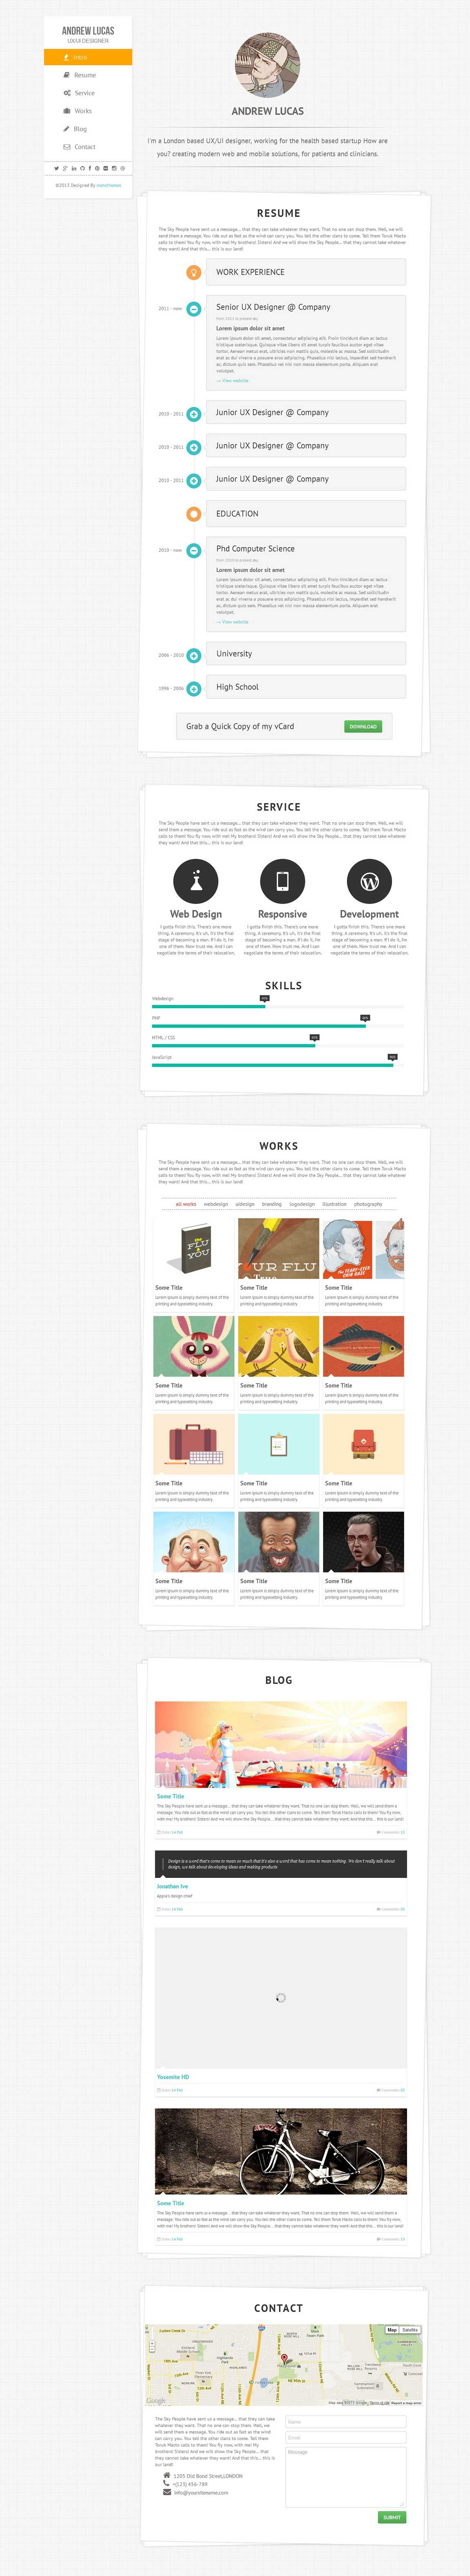 Pin By One Page Love On One Page Website Templates Business Card Inspiration Web Design Templates